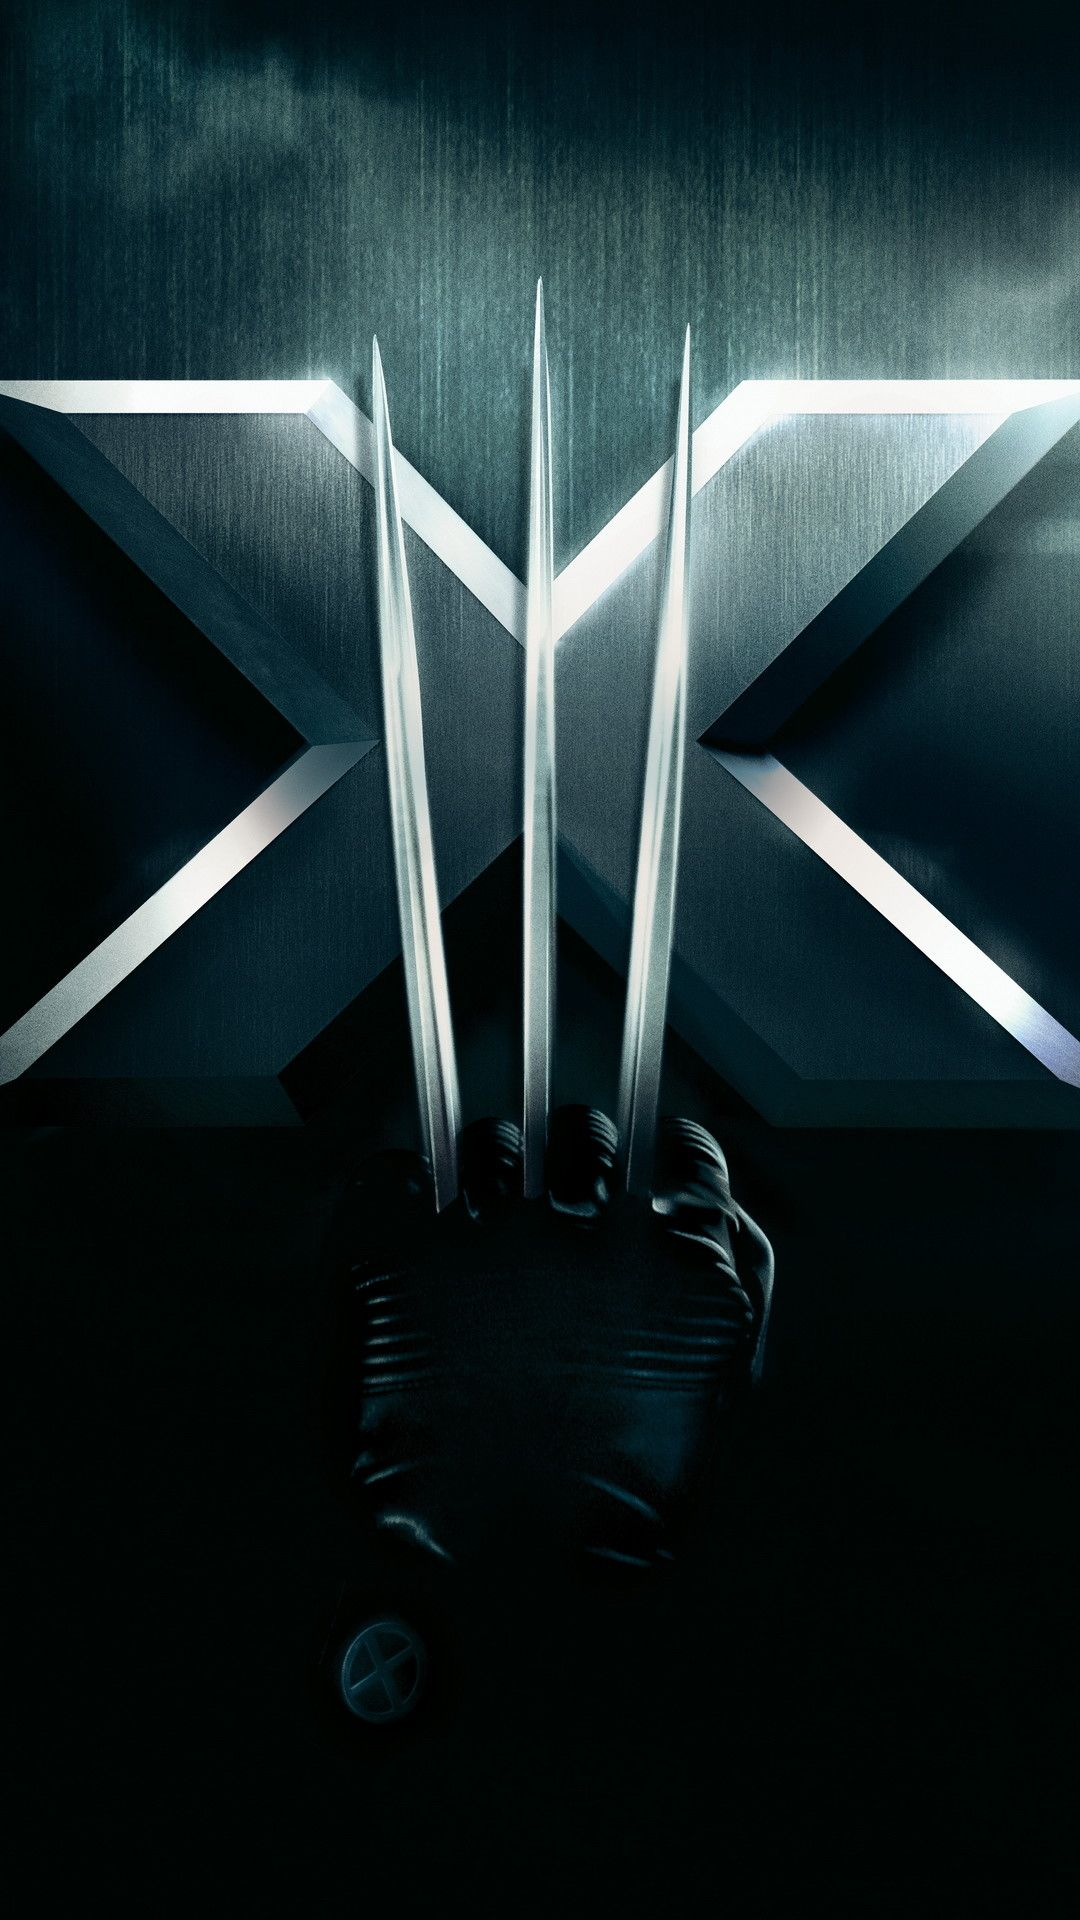 1080x1920 X Men Logo Wallpaper (68+ images)